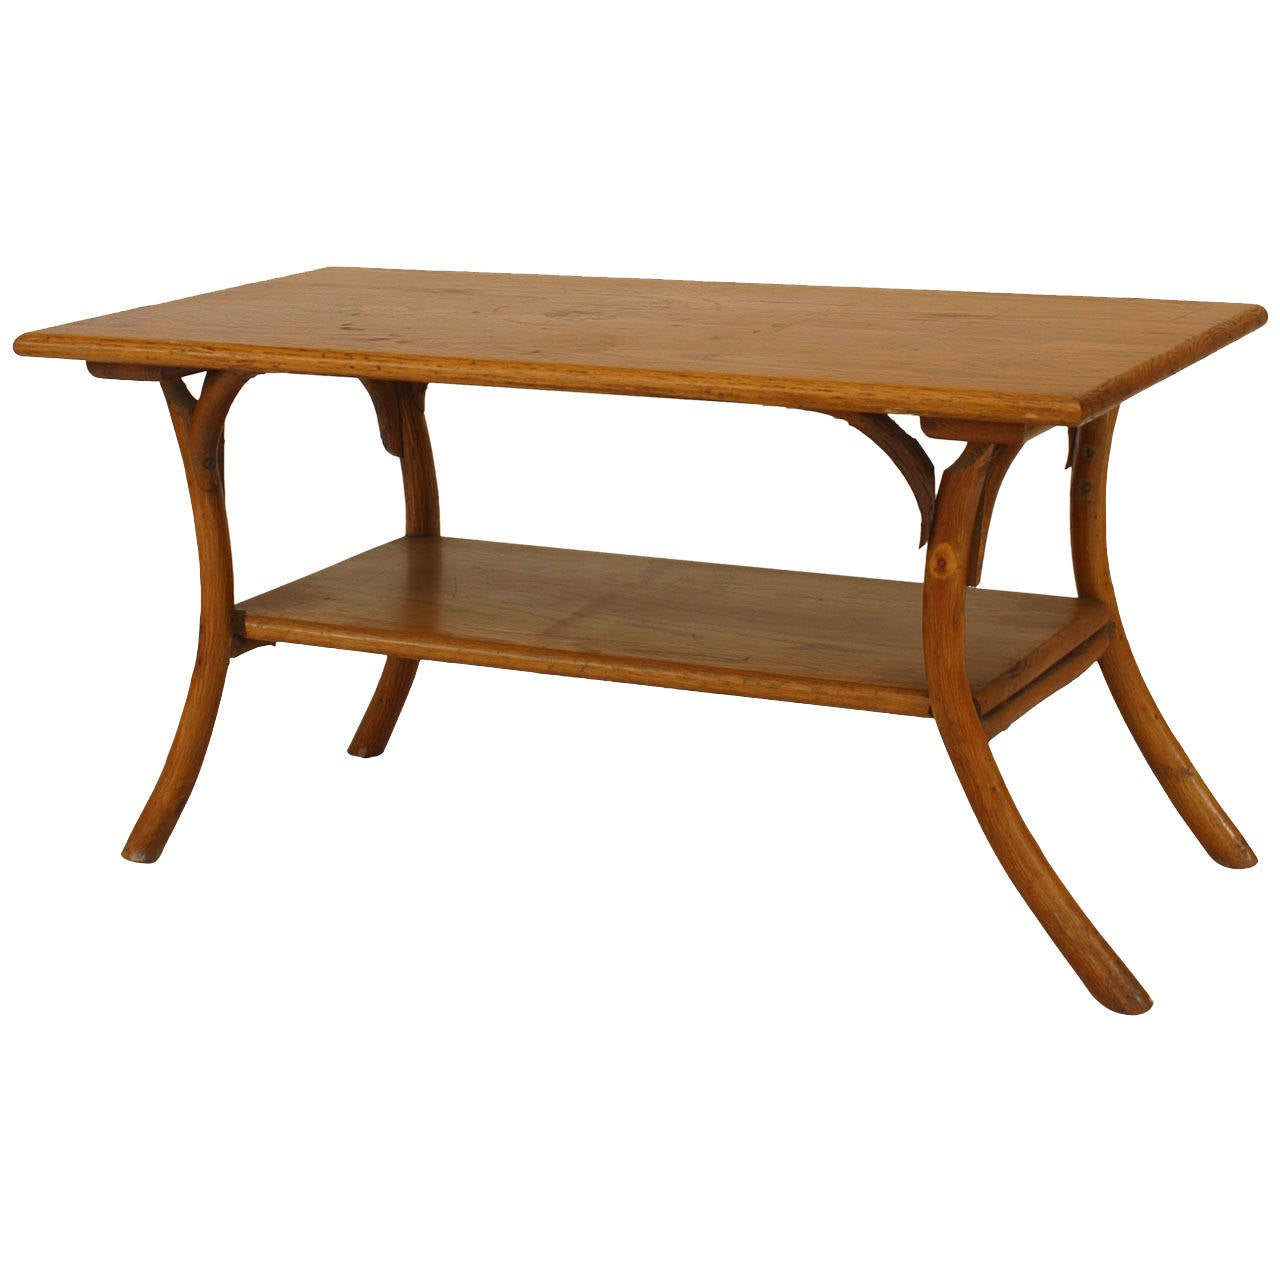 1940's or 1950's American Rustic Oak Coffee Table